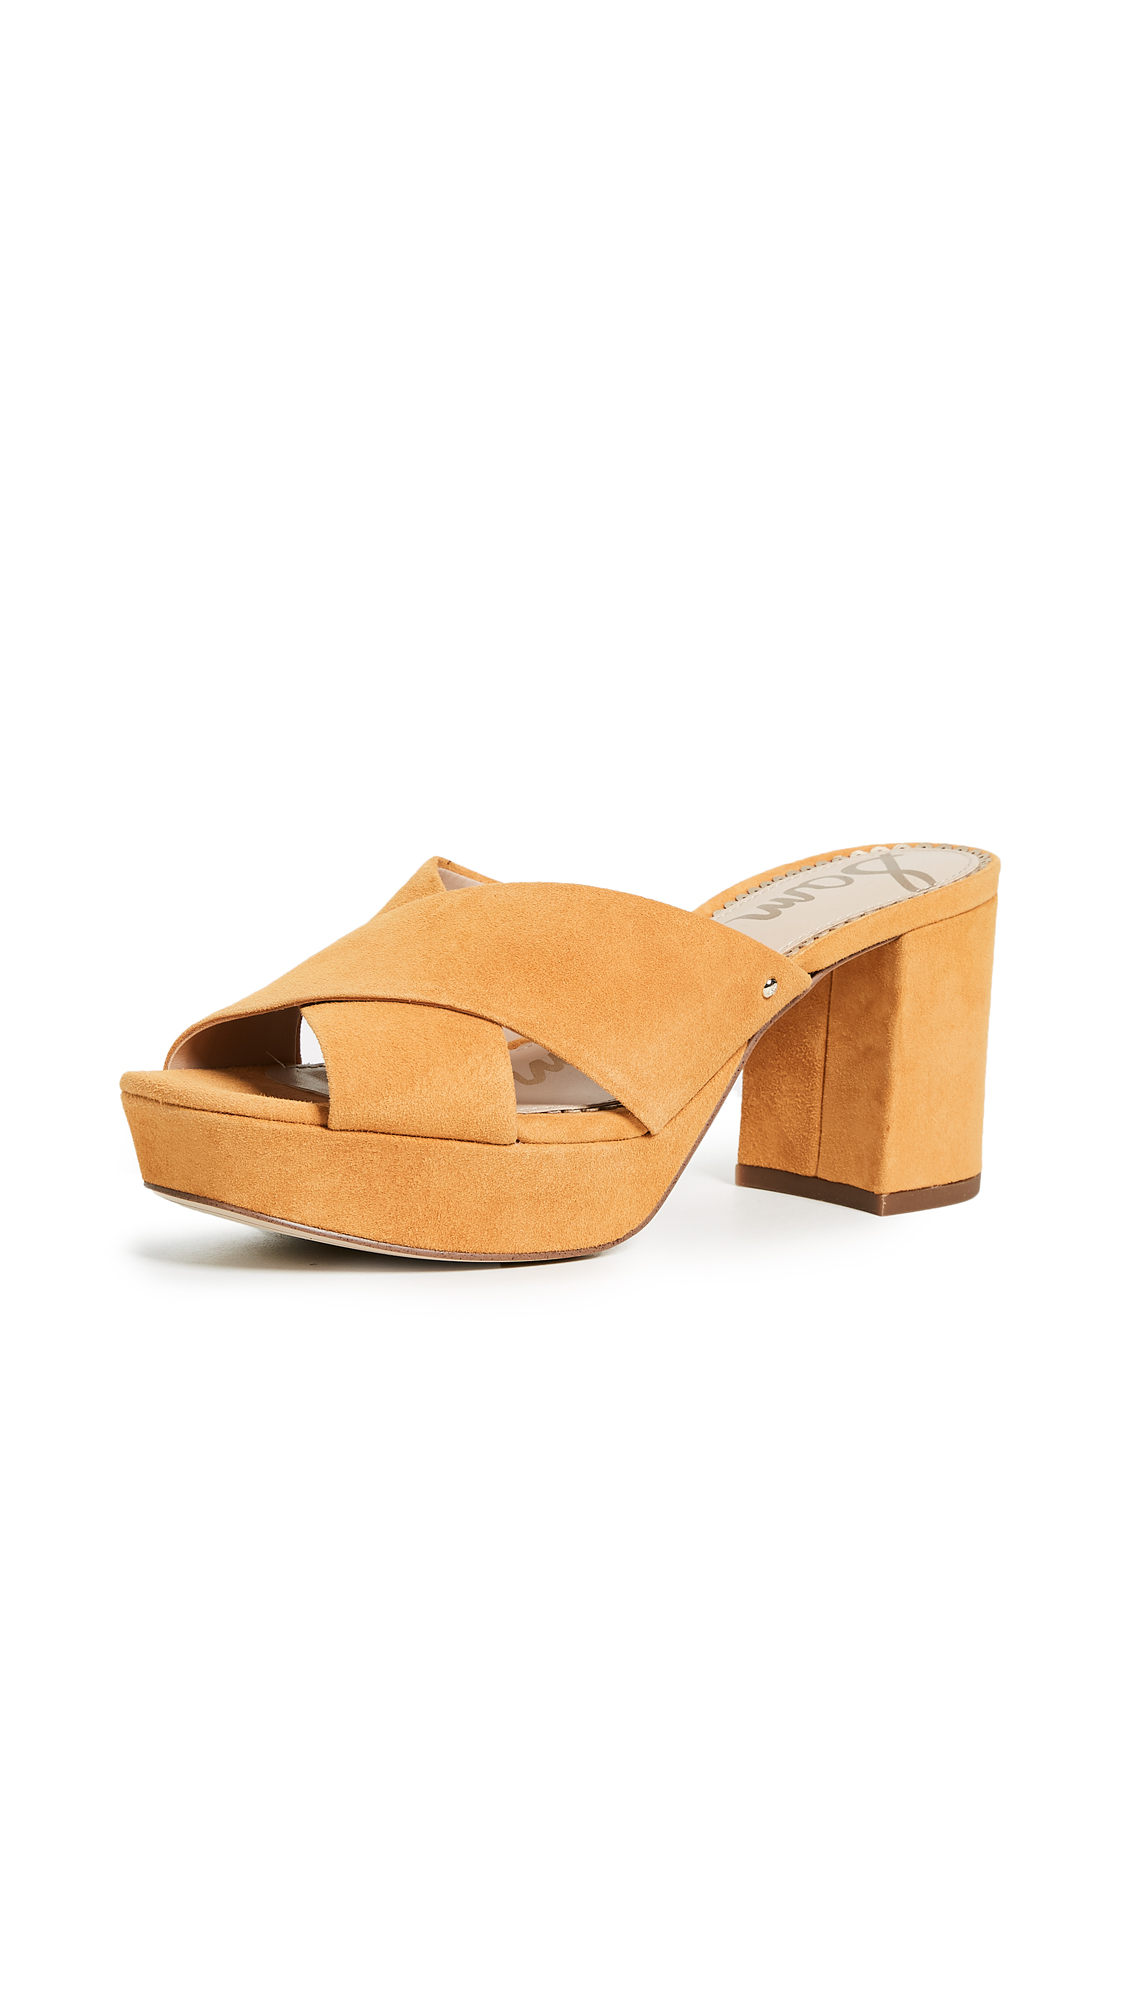 Sam Edelman Jayne Platform Mules - Sunglow Yellow